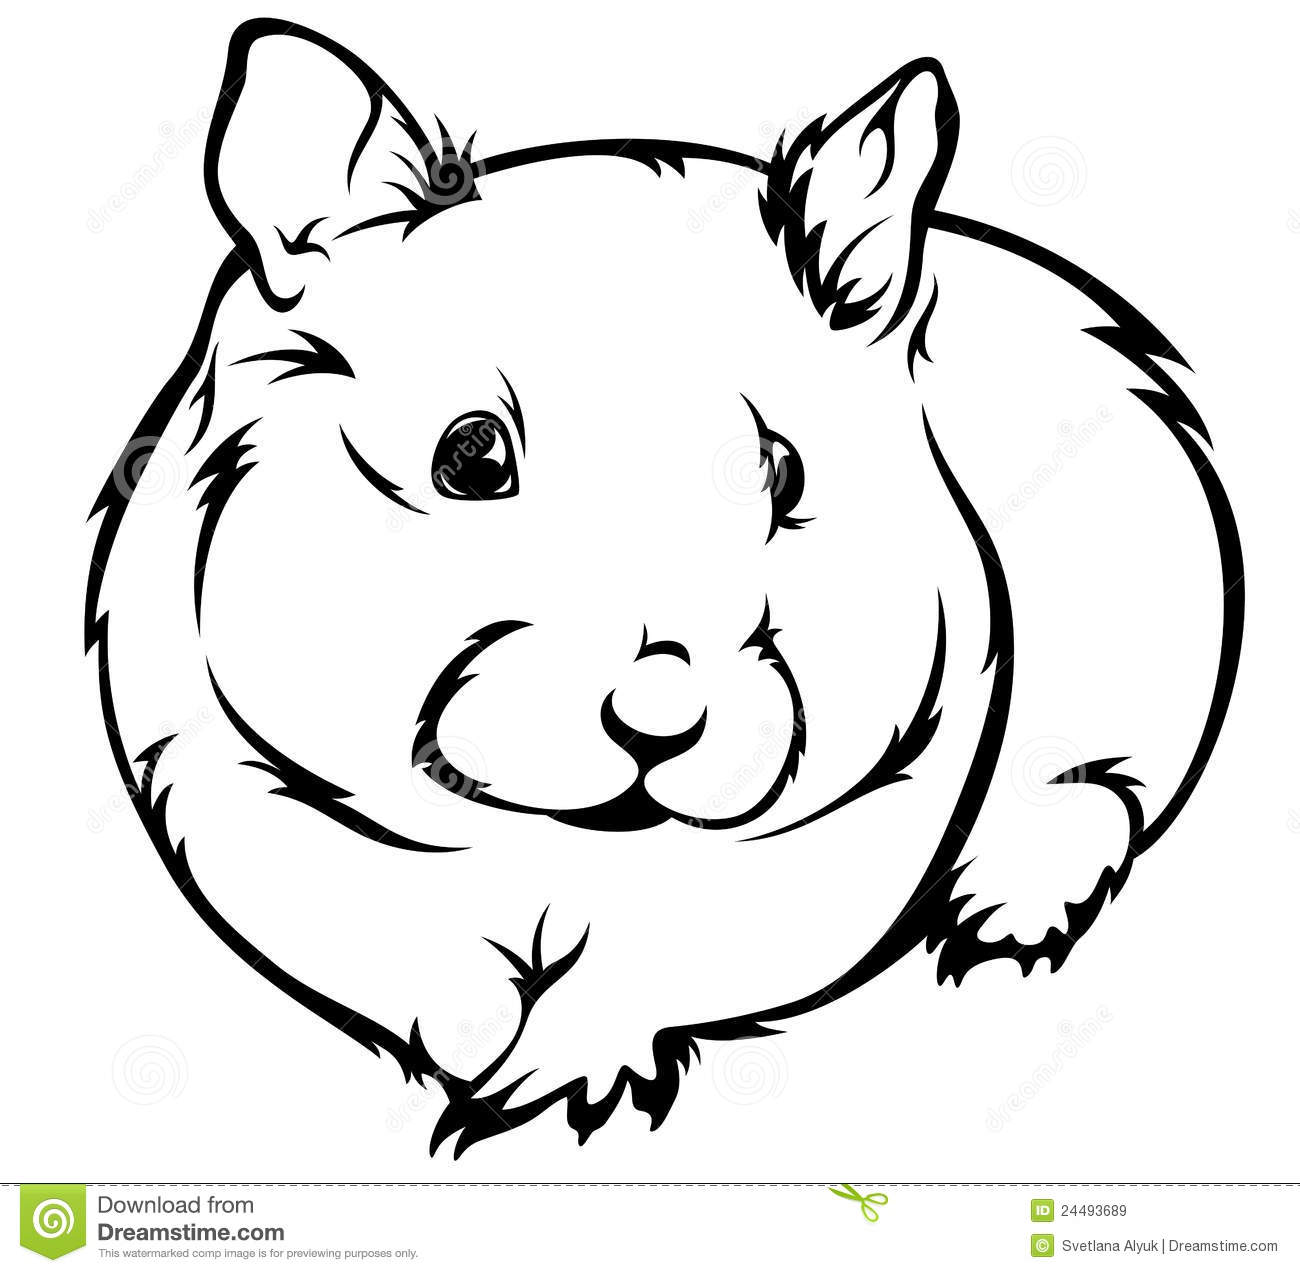 792 Hamster free clipart.